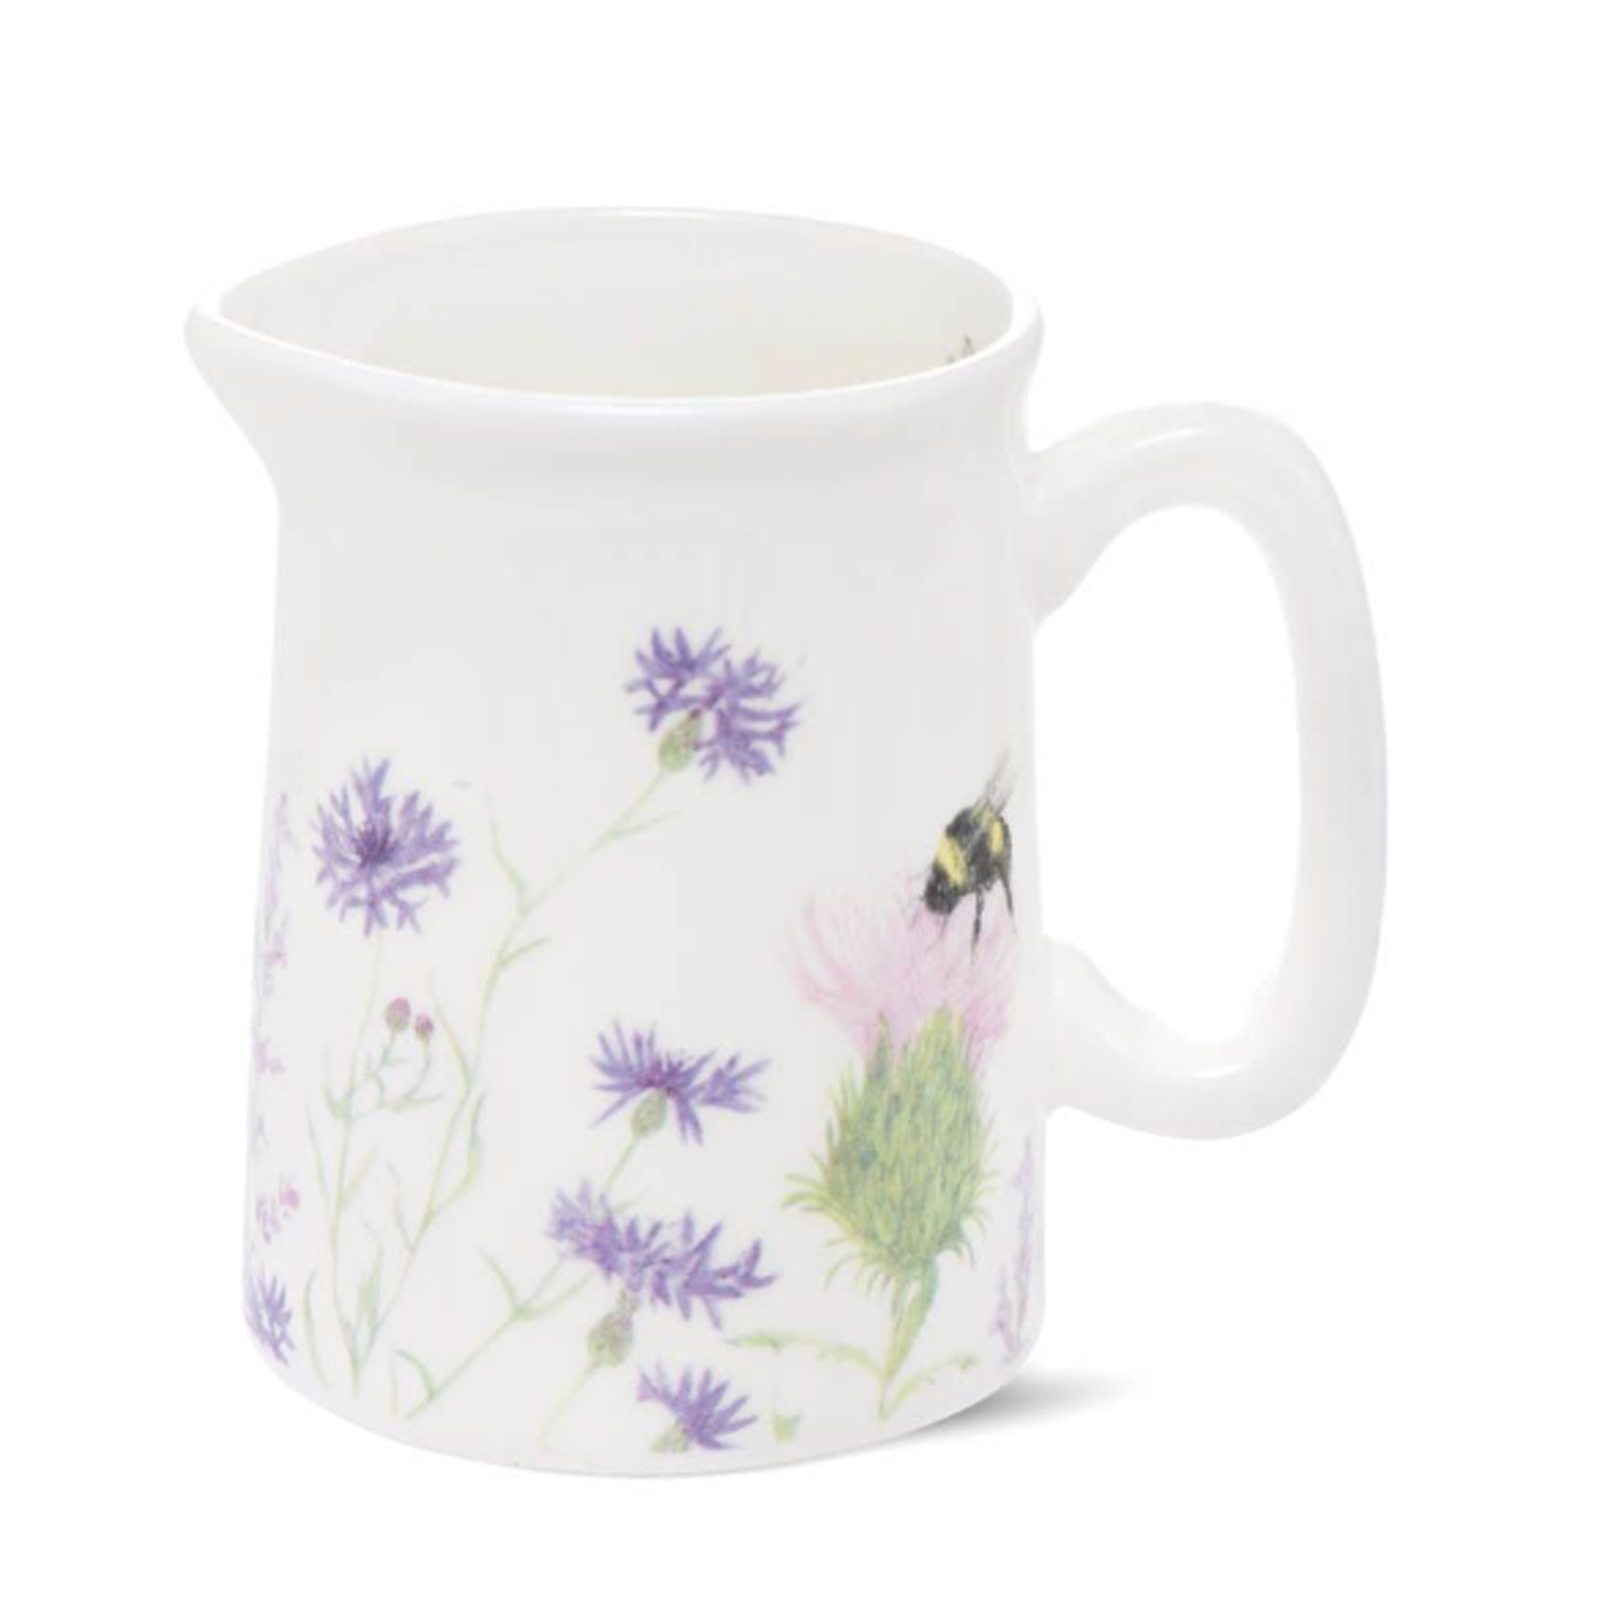 Bumble Bee and Flower Bone China Jug - Mini by Mosney Mill